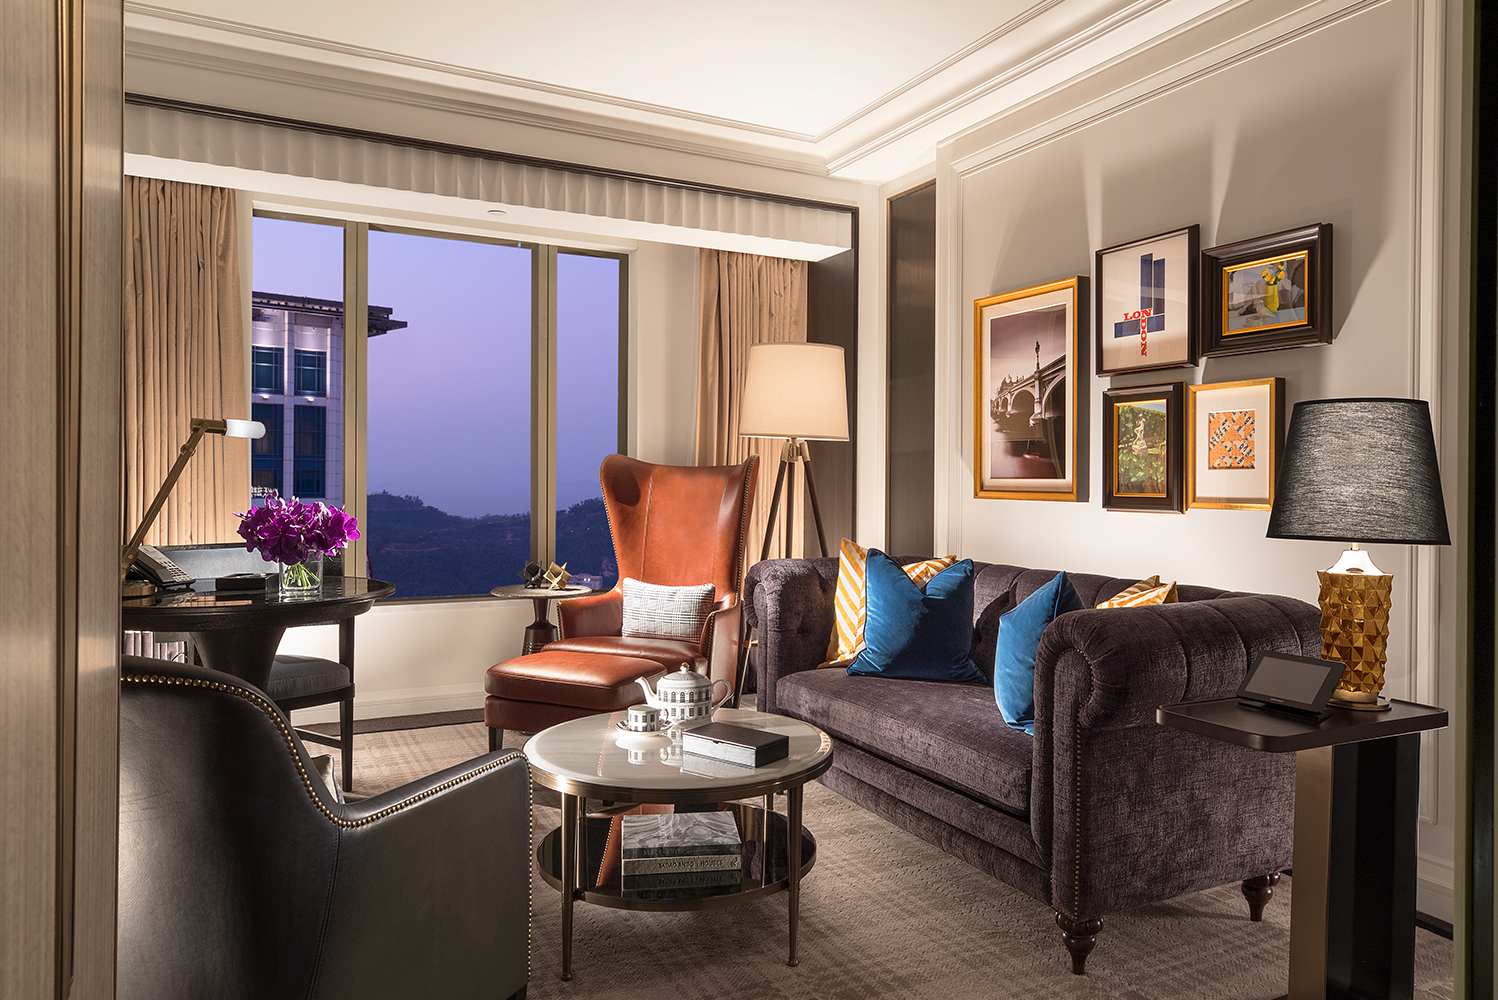 The Londoner Macao will be Sands' latest collaboration with David Beckham, who will work with the interior design team.